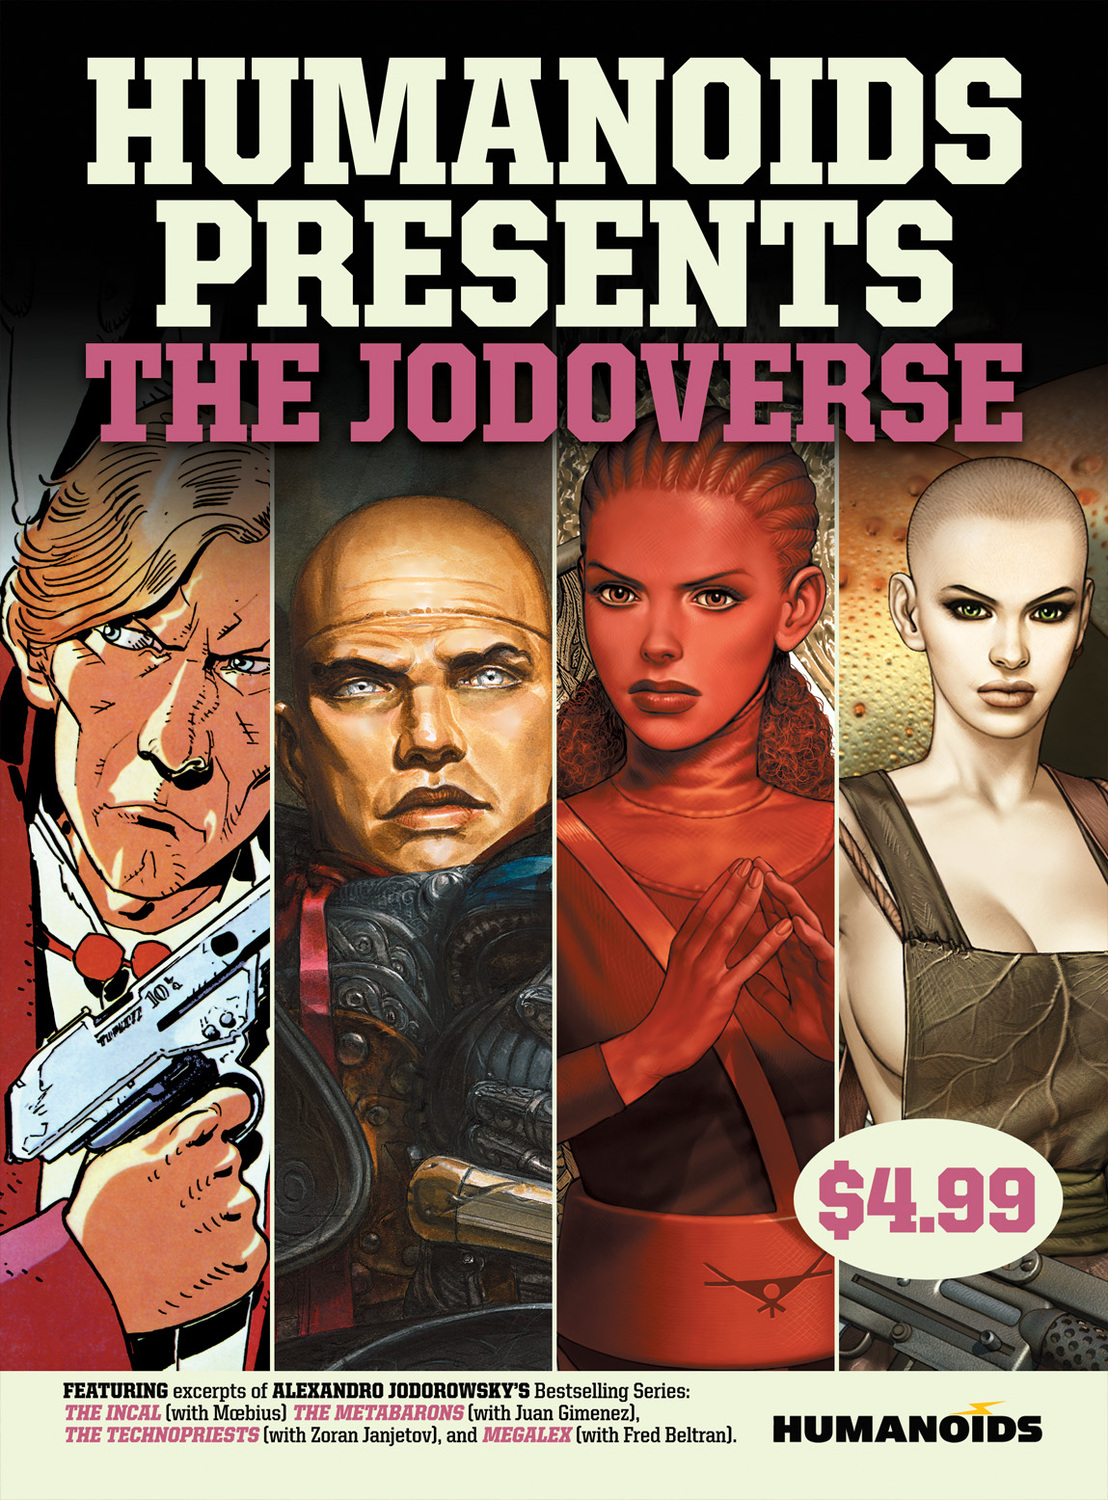 Humanoids Presents: The Jodoverse the technopriests